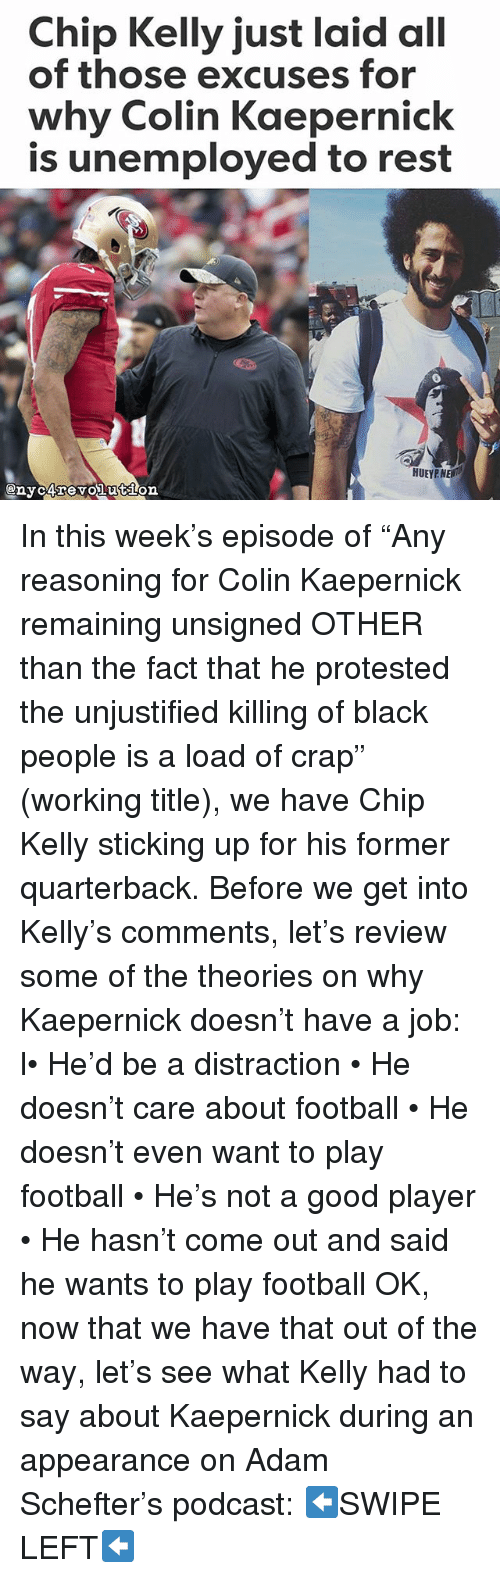 """Chip Kelly: Chip Kelly just laid all  of those excuses for  why Colin Kaepernick  is unemployed to rest  HUEYPNE In this week's episode of """"Any reasoning for Colin Kaepernick remaining unsigned OTHER than the fact that he protested the unjustified killing of black people is a load of crap"""" (working title), we have Chip Kelly sticking up for his former quarterback. Before we get into Kelly's comments, let's review some of the theories on why Kaepernick doesn't have a job: l• He'd be a distraction • He doesn't care about football • He doesn't even want to play football • He's not a good player • He hasn't come out and said he wants to play football OK, now that we have that out of the way, let's see what Kelly had to say about Kaepernick during an appearance on Adam Schefter's podcast: ⬅SWIPE LEFT⬅"""